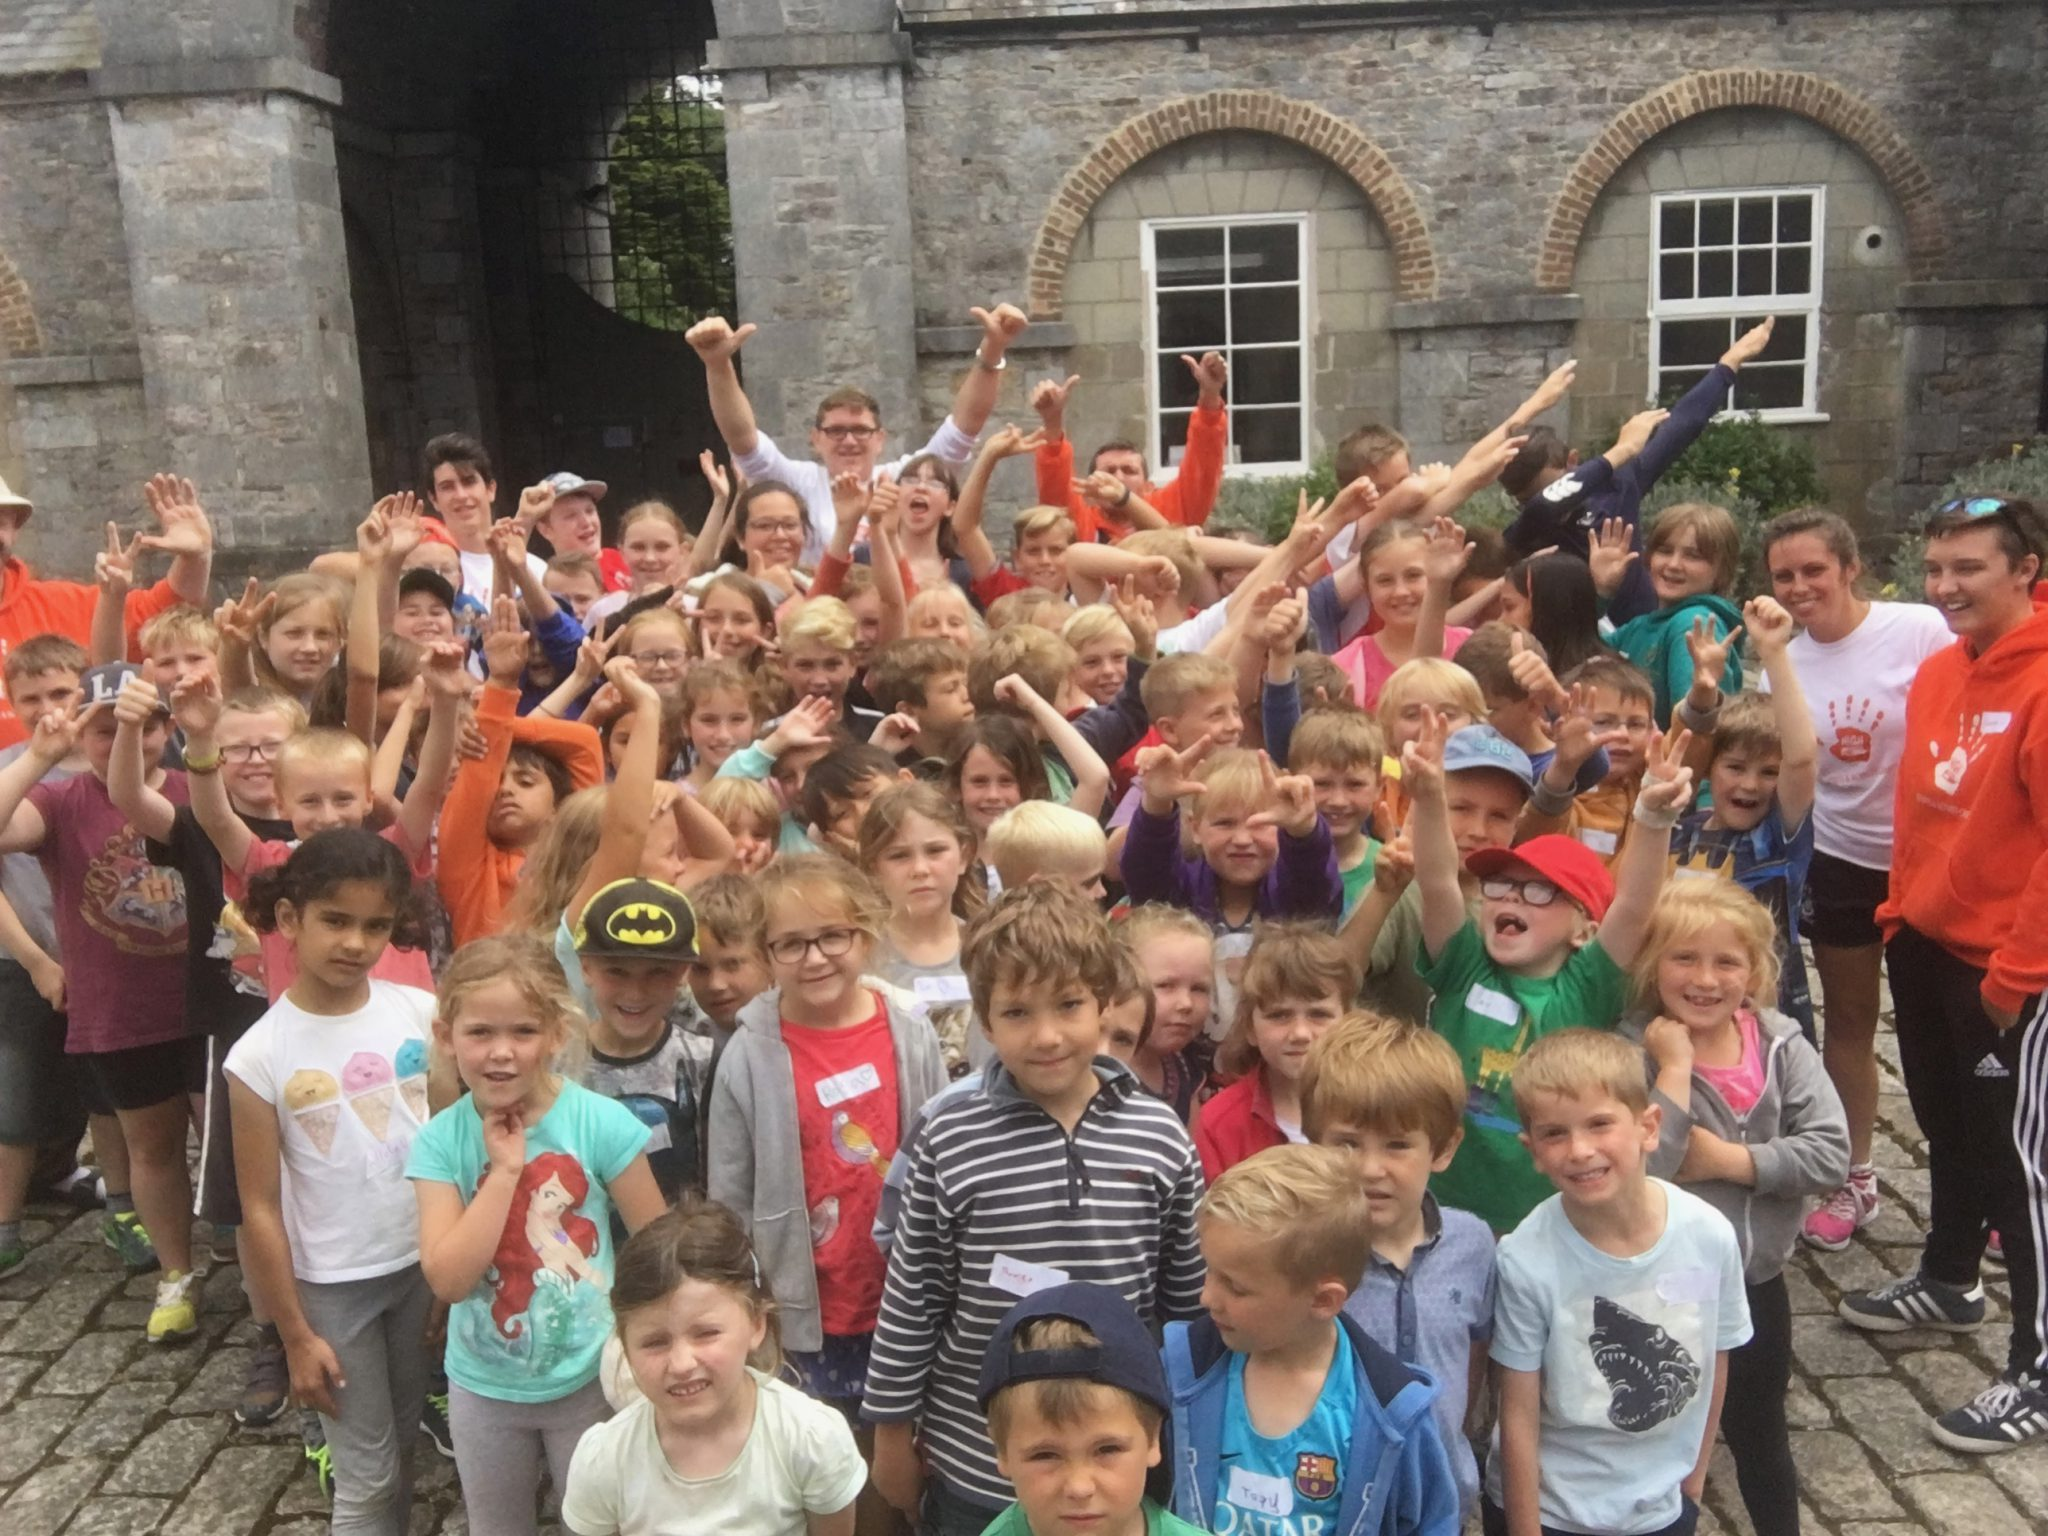 5-7 year olds are happy at popular sports and activity camps